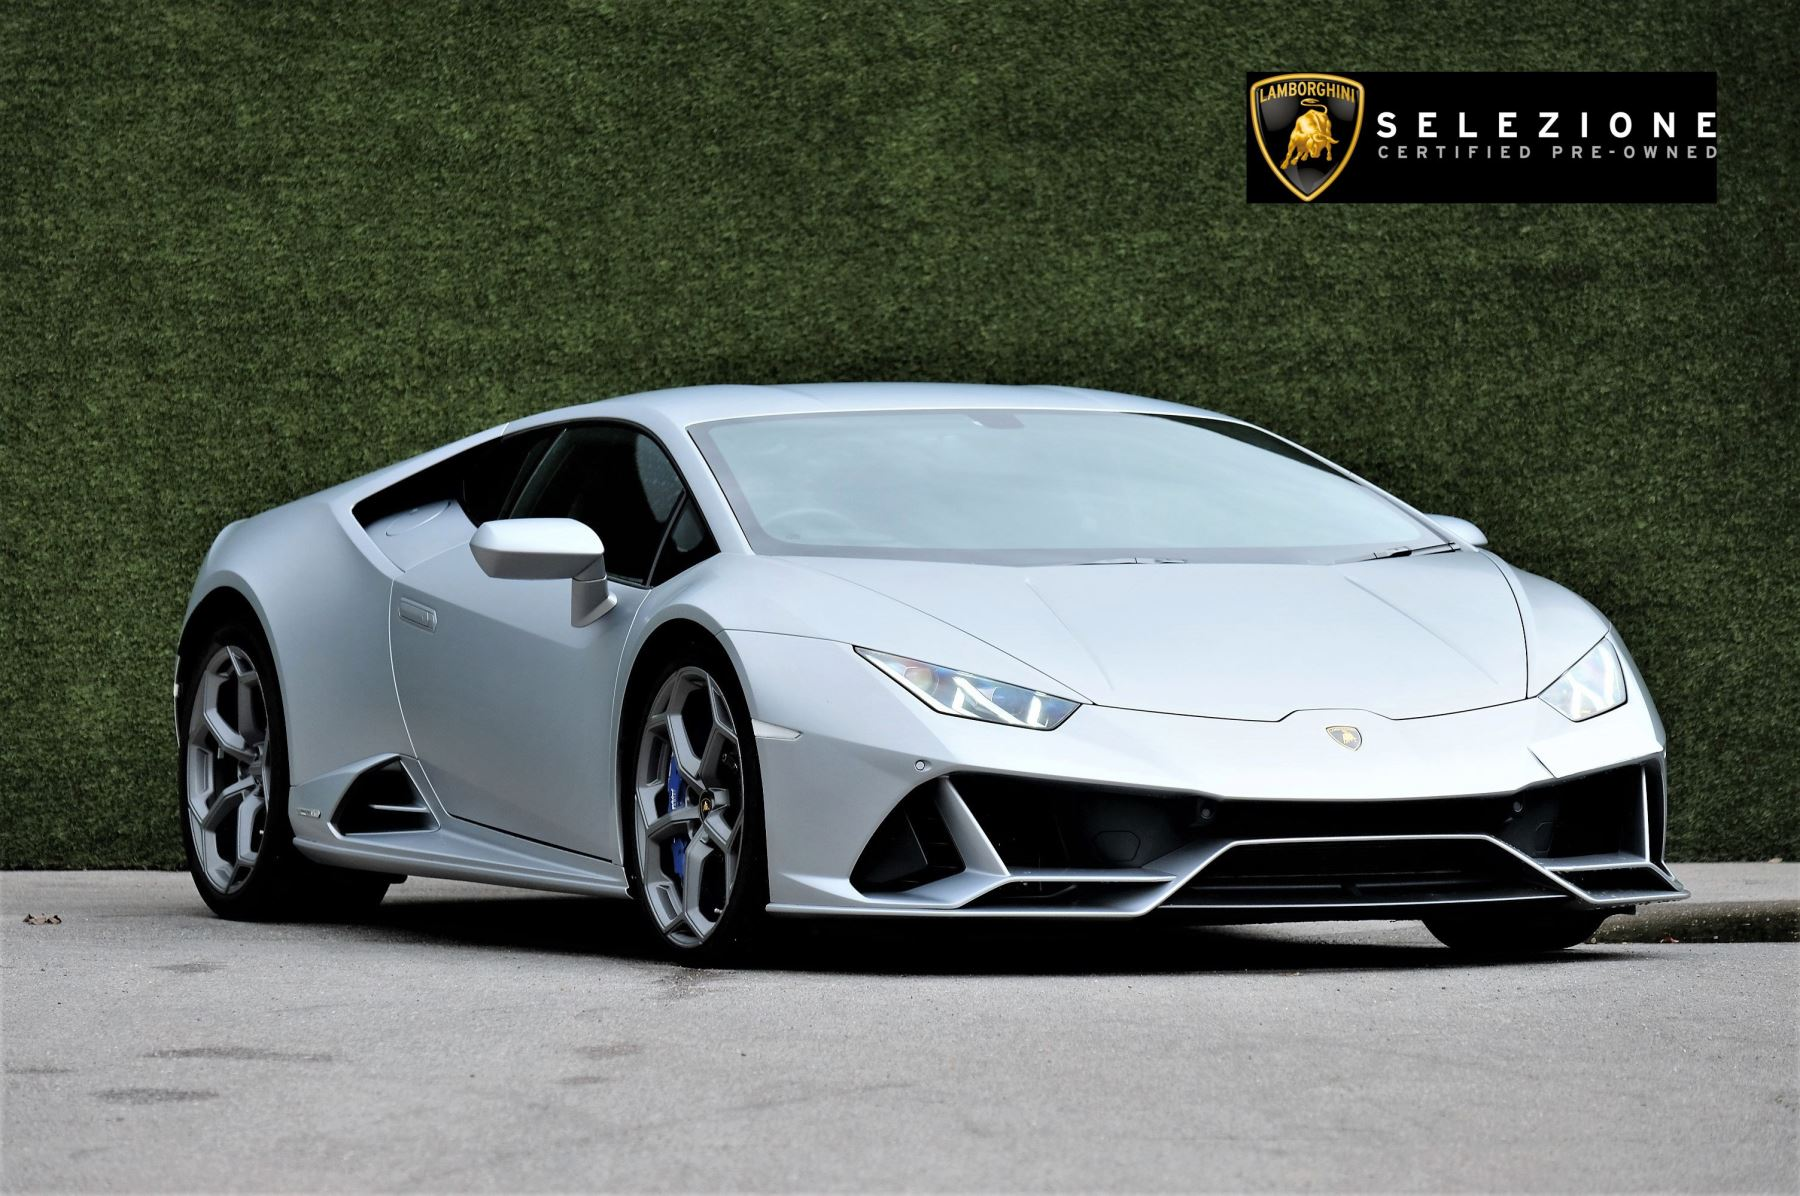 Lamborghini Huracan EVO LP 640-4 5.2 Semi-Automatic 2 door Coupe